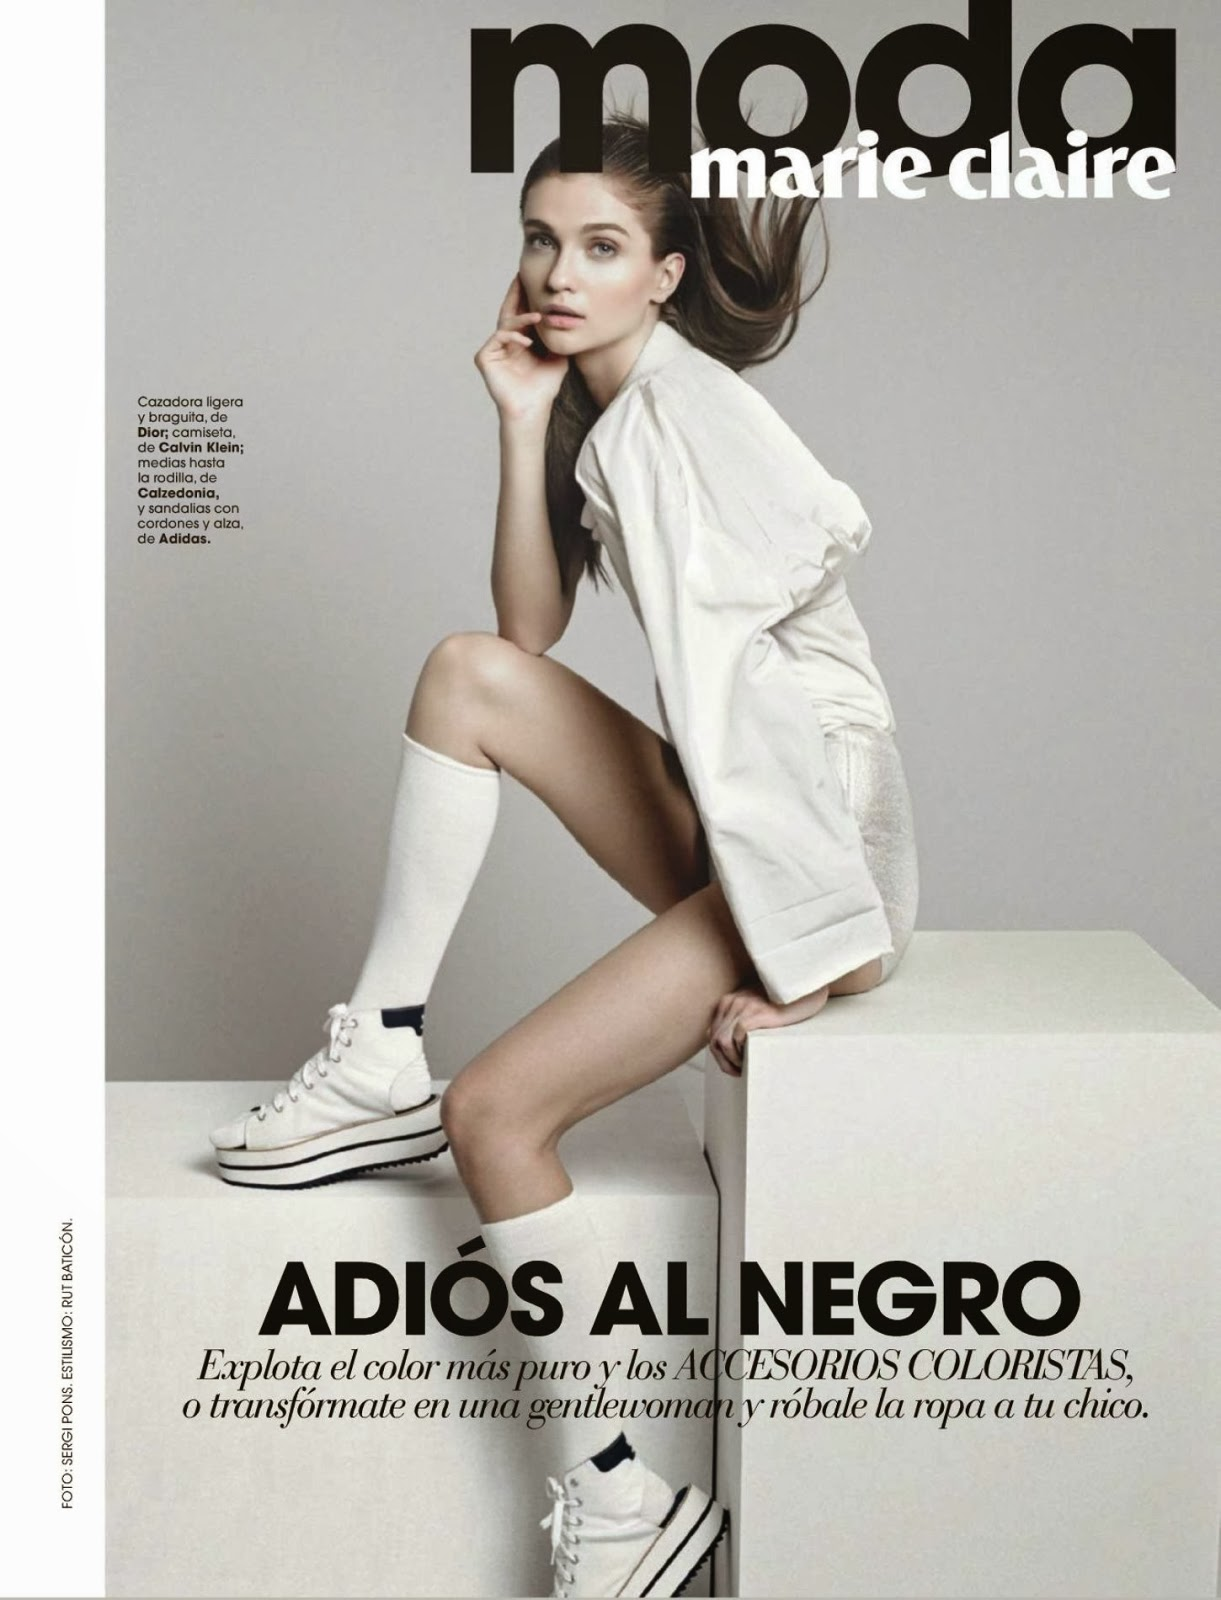 Ella Kandyba Marie Claire Spain Magazine Photoshoot February 2014